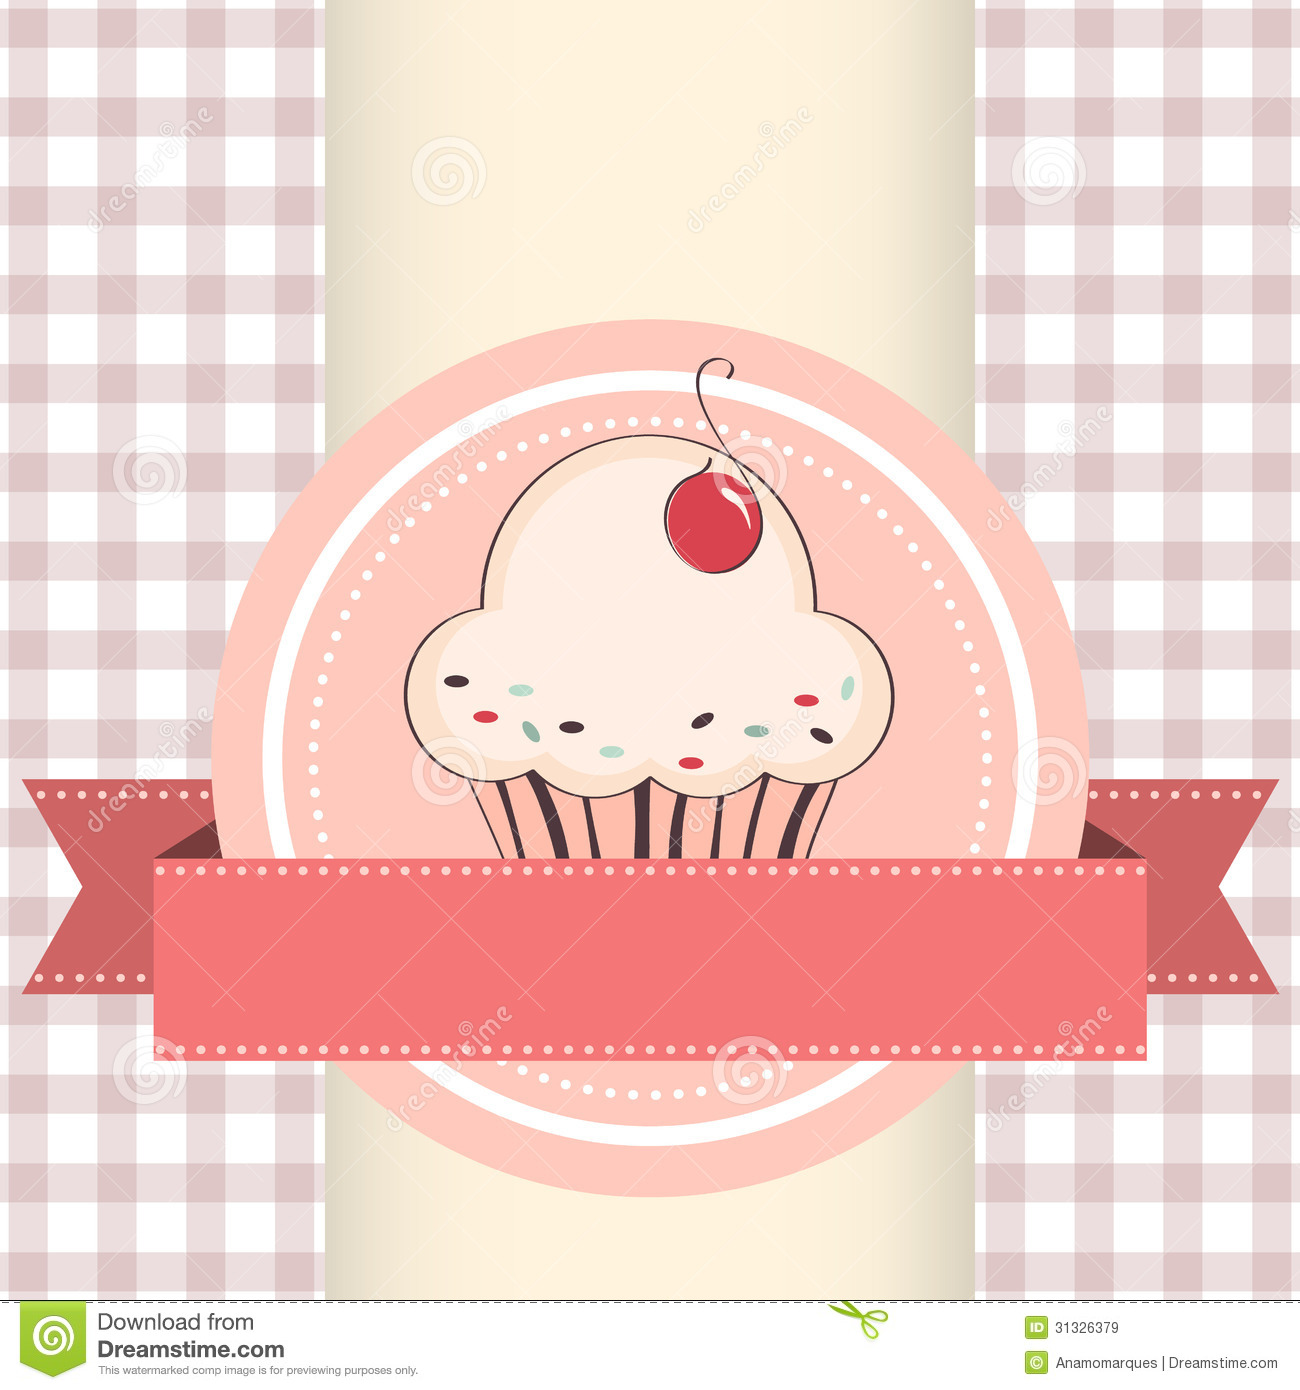 Vector Illustration Of Cupcake Royalty Free Stock Images ...